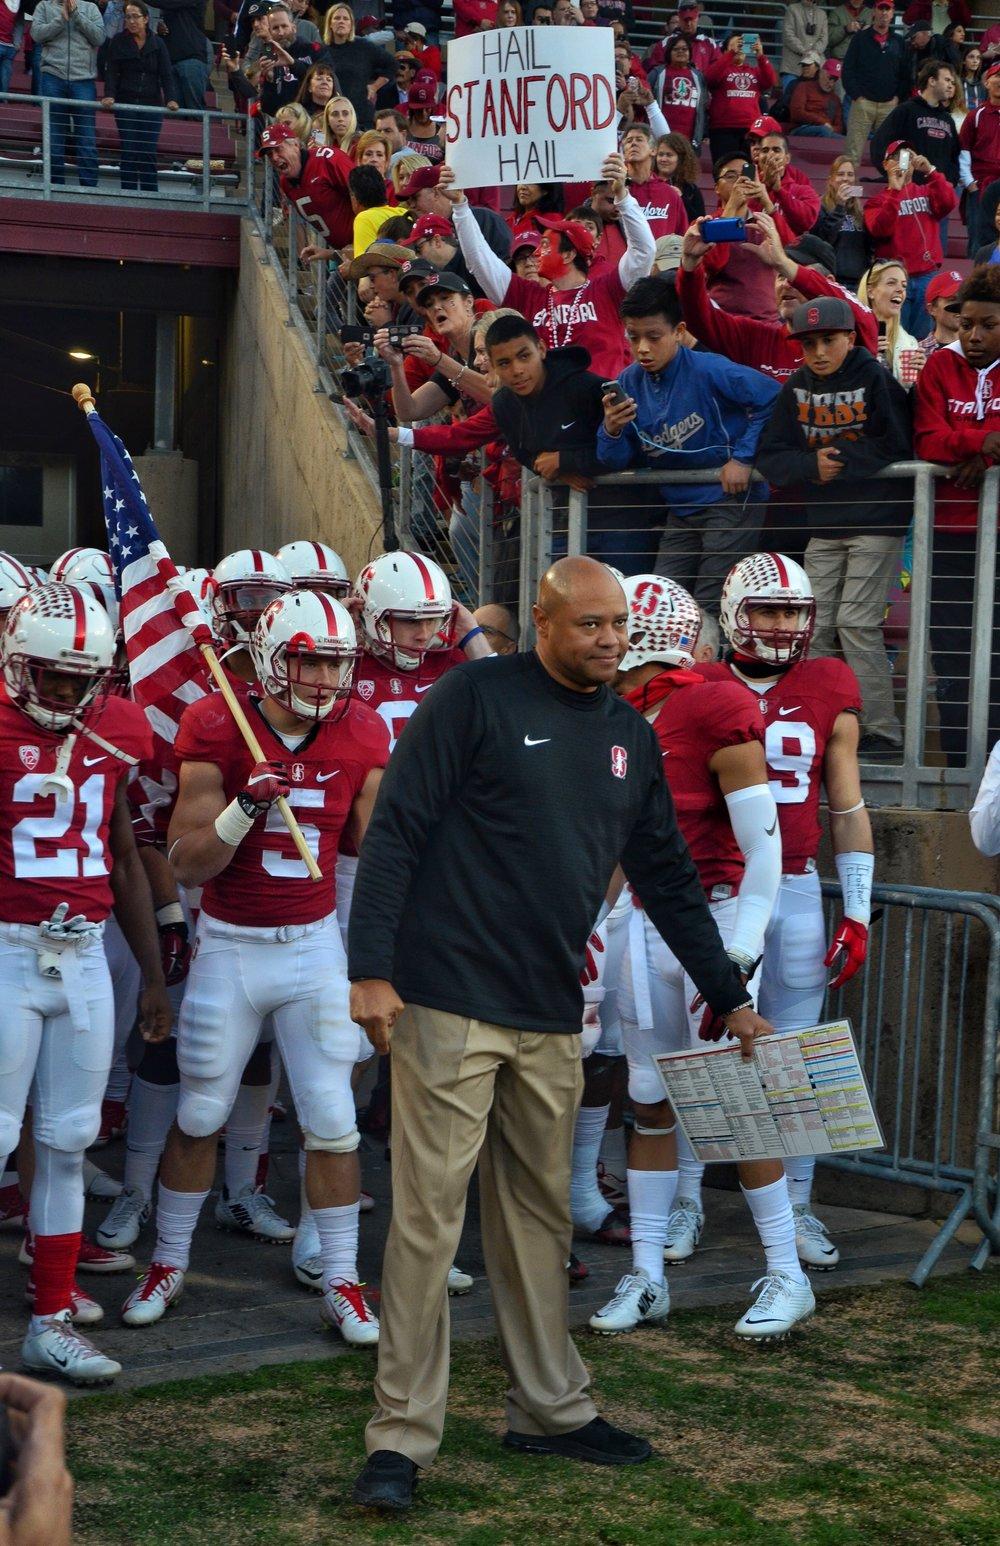 Coach Shaw ready to lead his team out on the field looking like he was ready to hit someone.